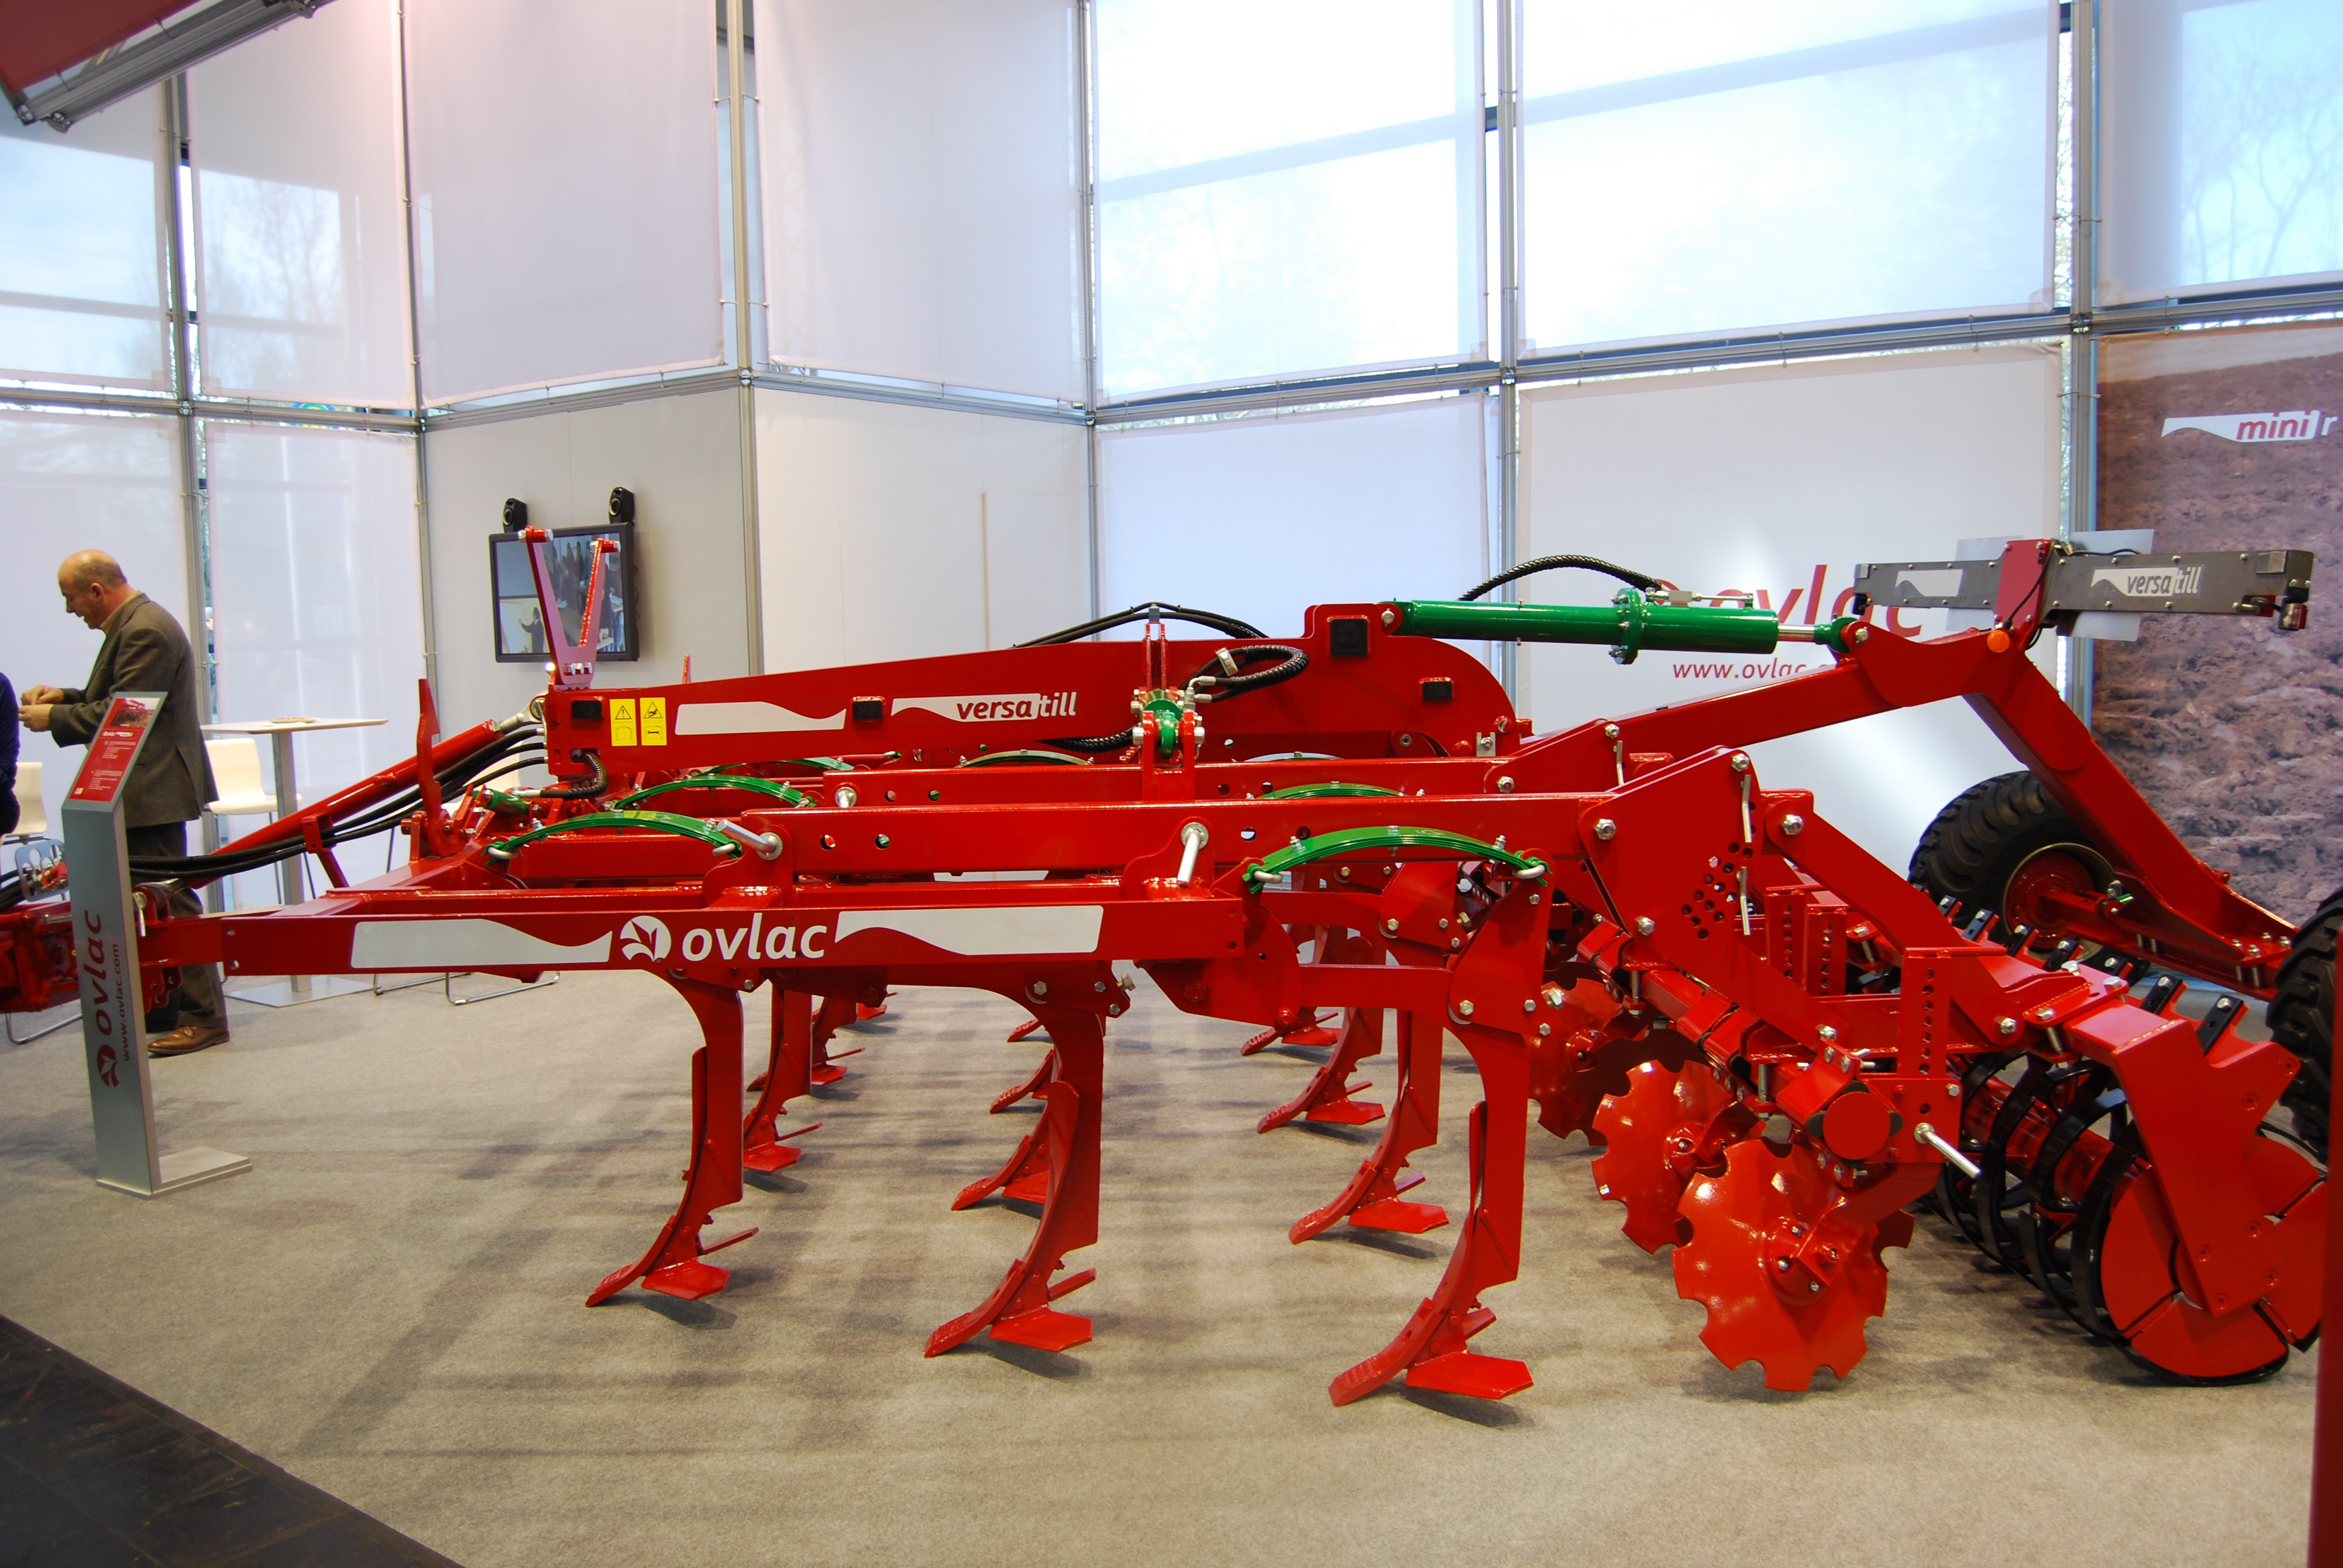 New technologies in OVLAC's plough and cultivator to be presented at Agritechnica 2015